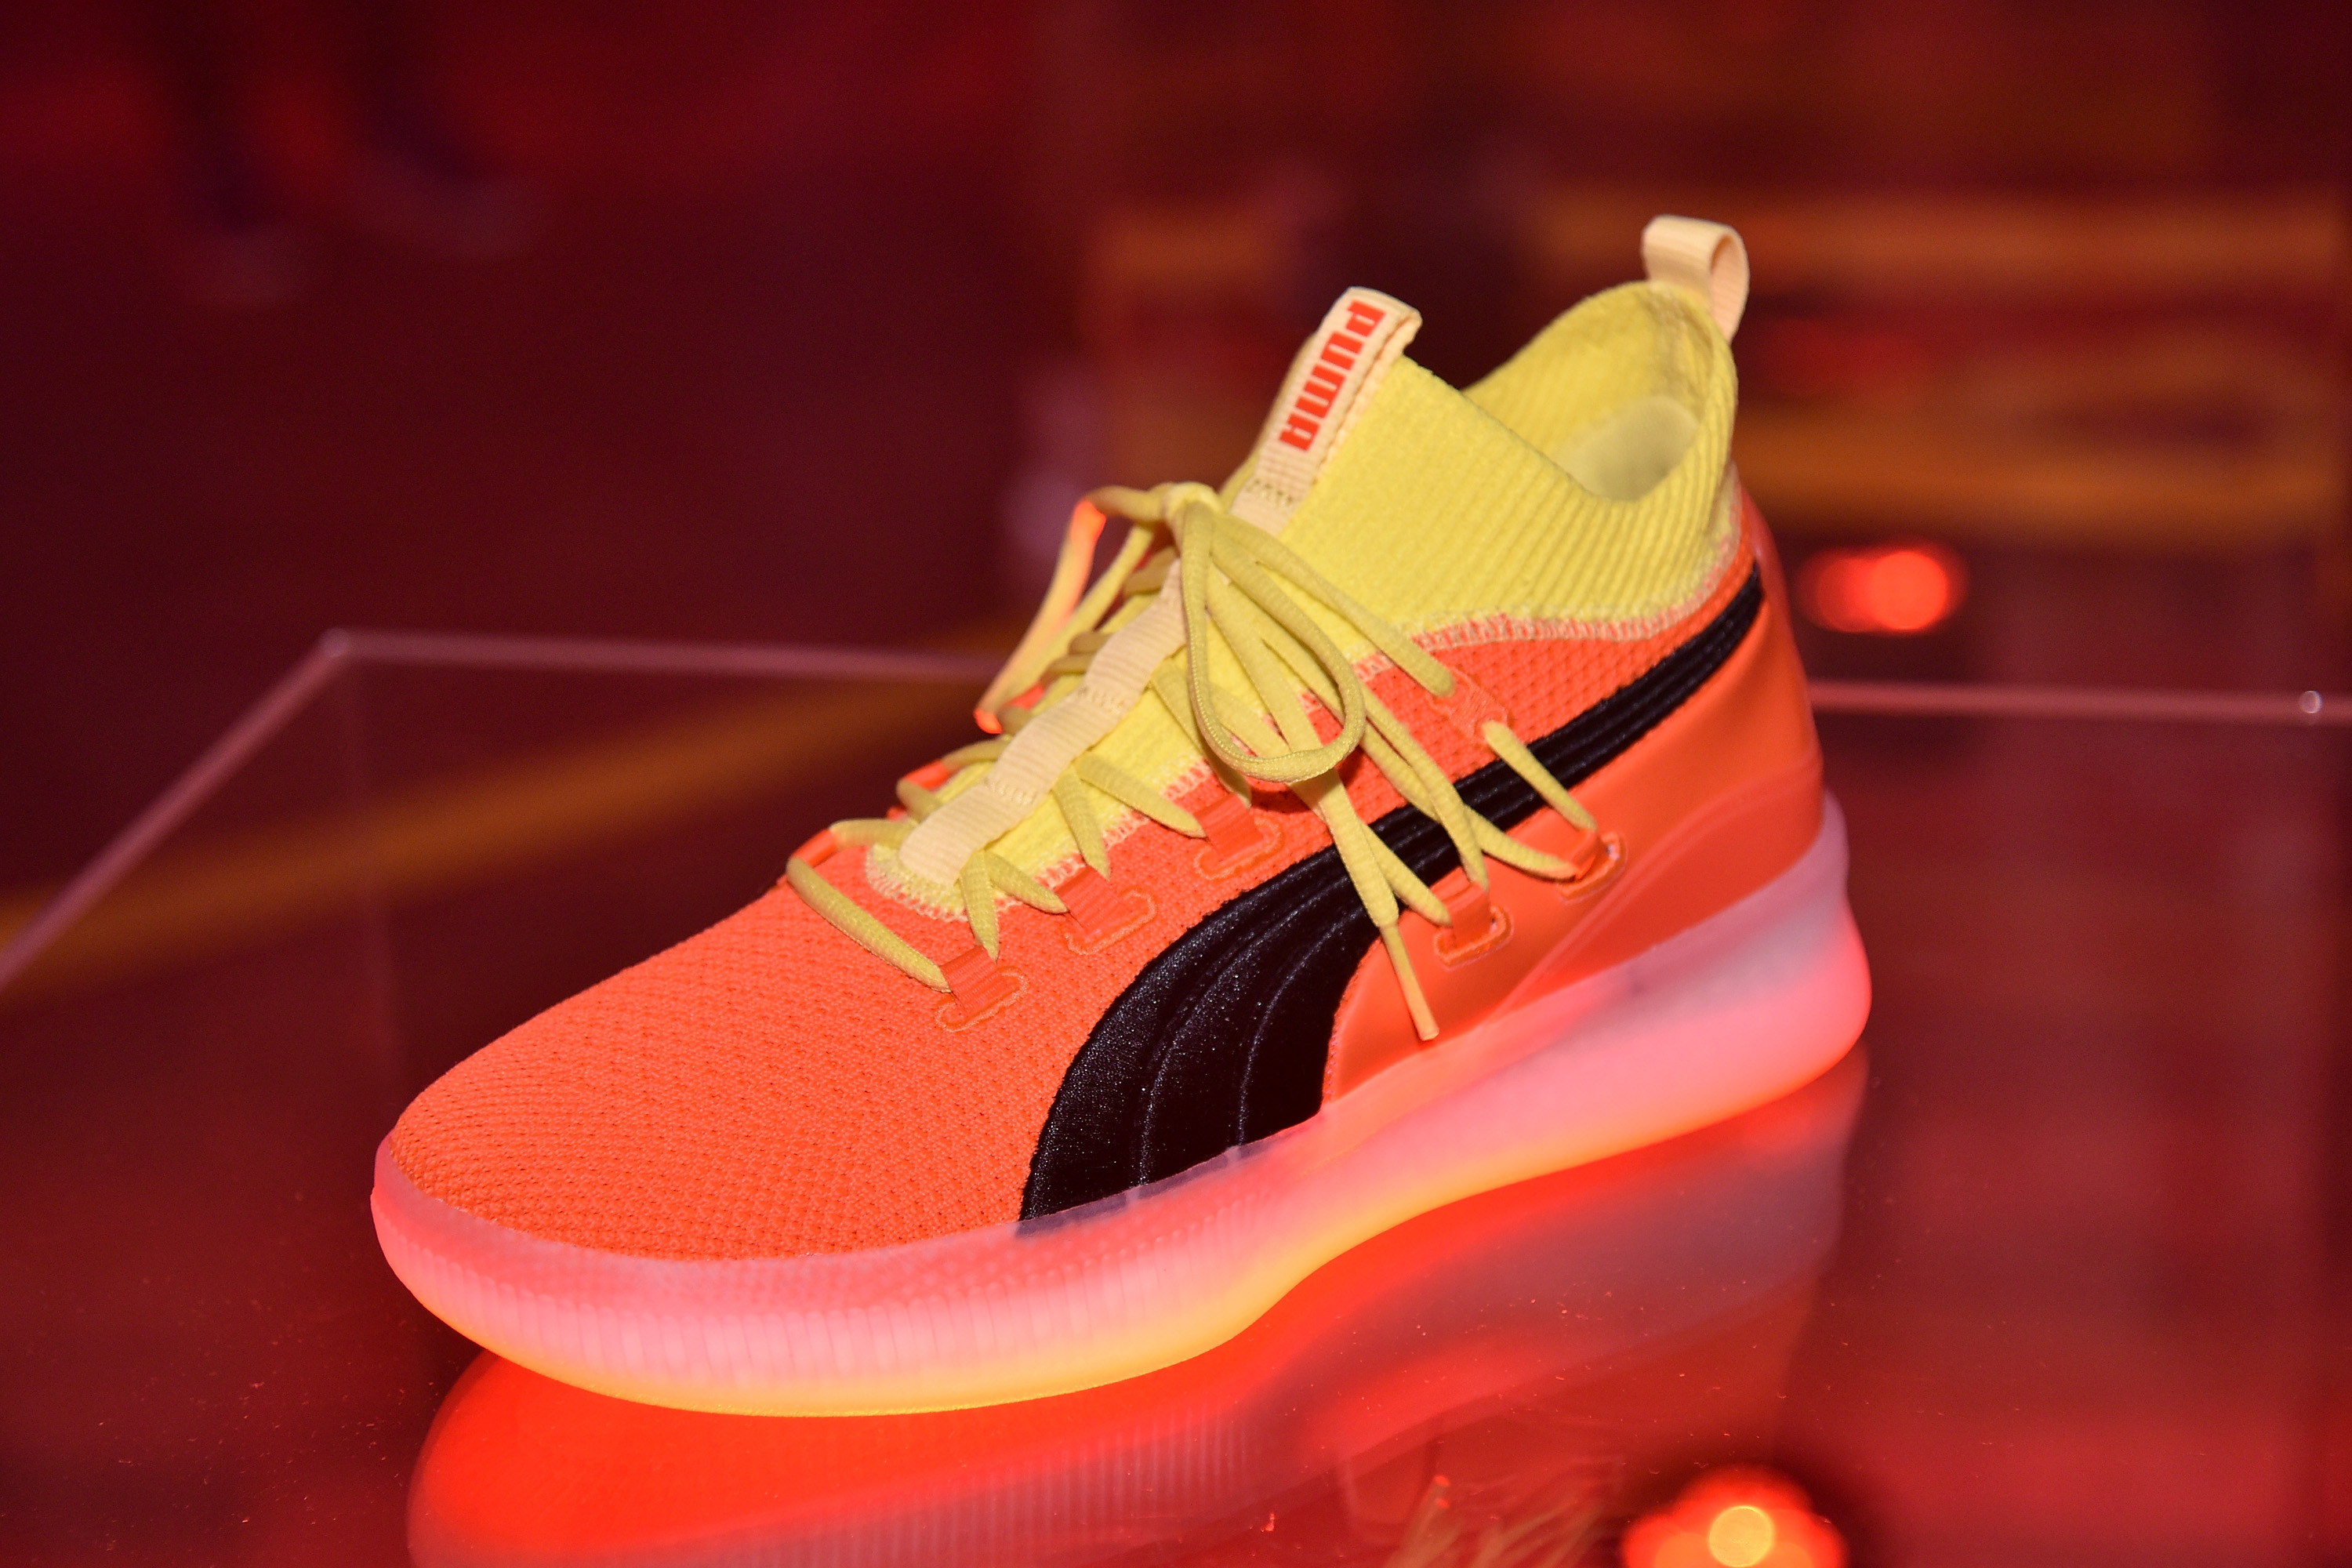 f2aad0b2174 Puma releases its new basketball shoe